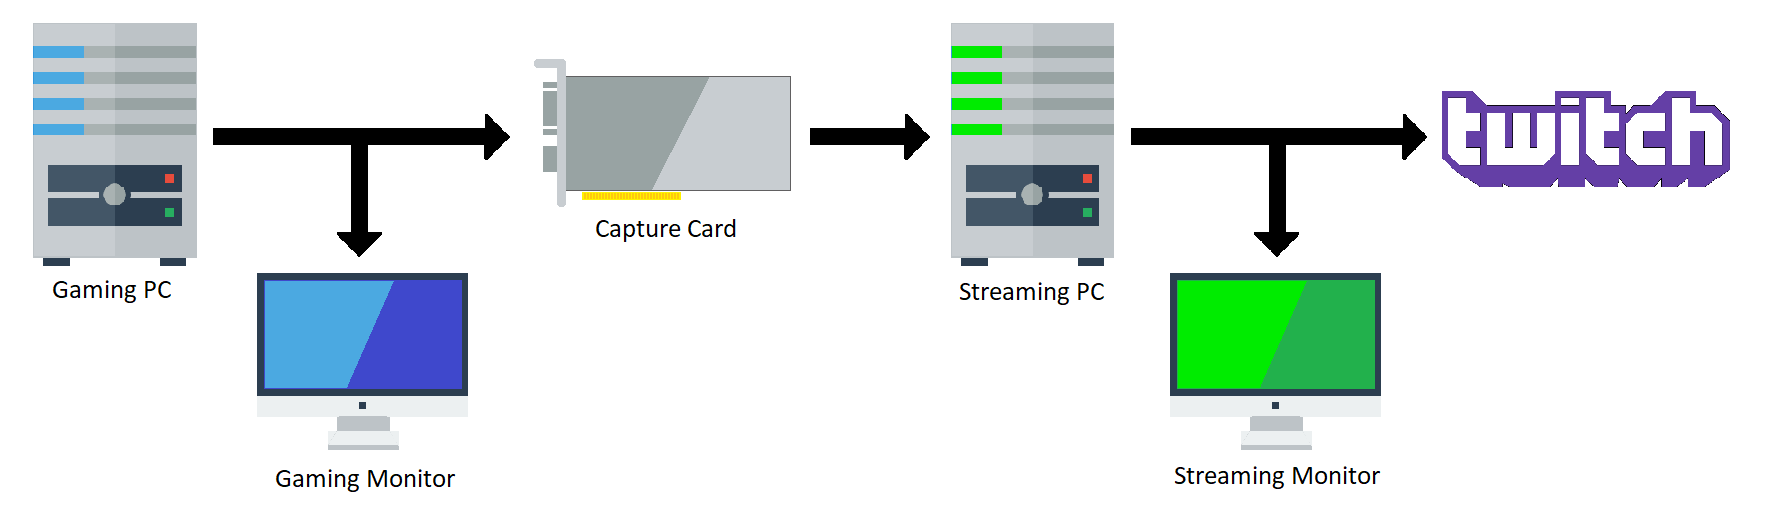 Building A Pc For Streaming To Twitch Pics Photos Computer Diagram With The Following Parts Labeled Cpu